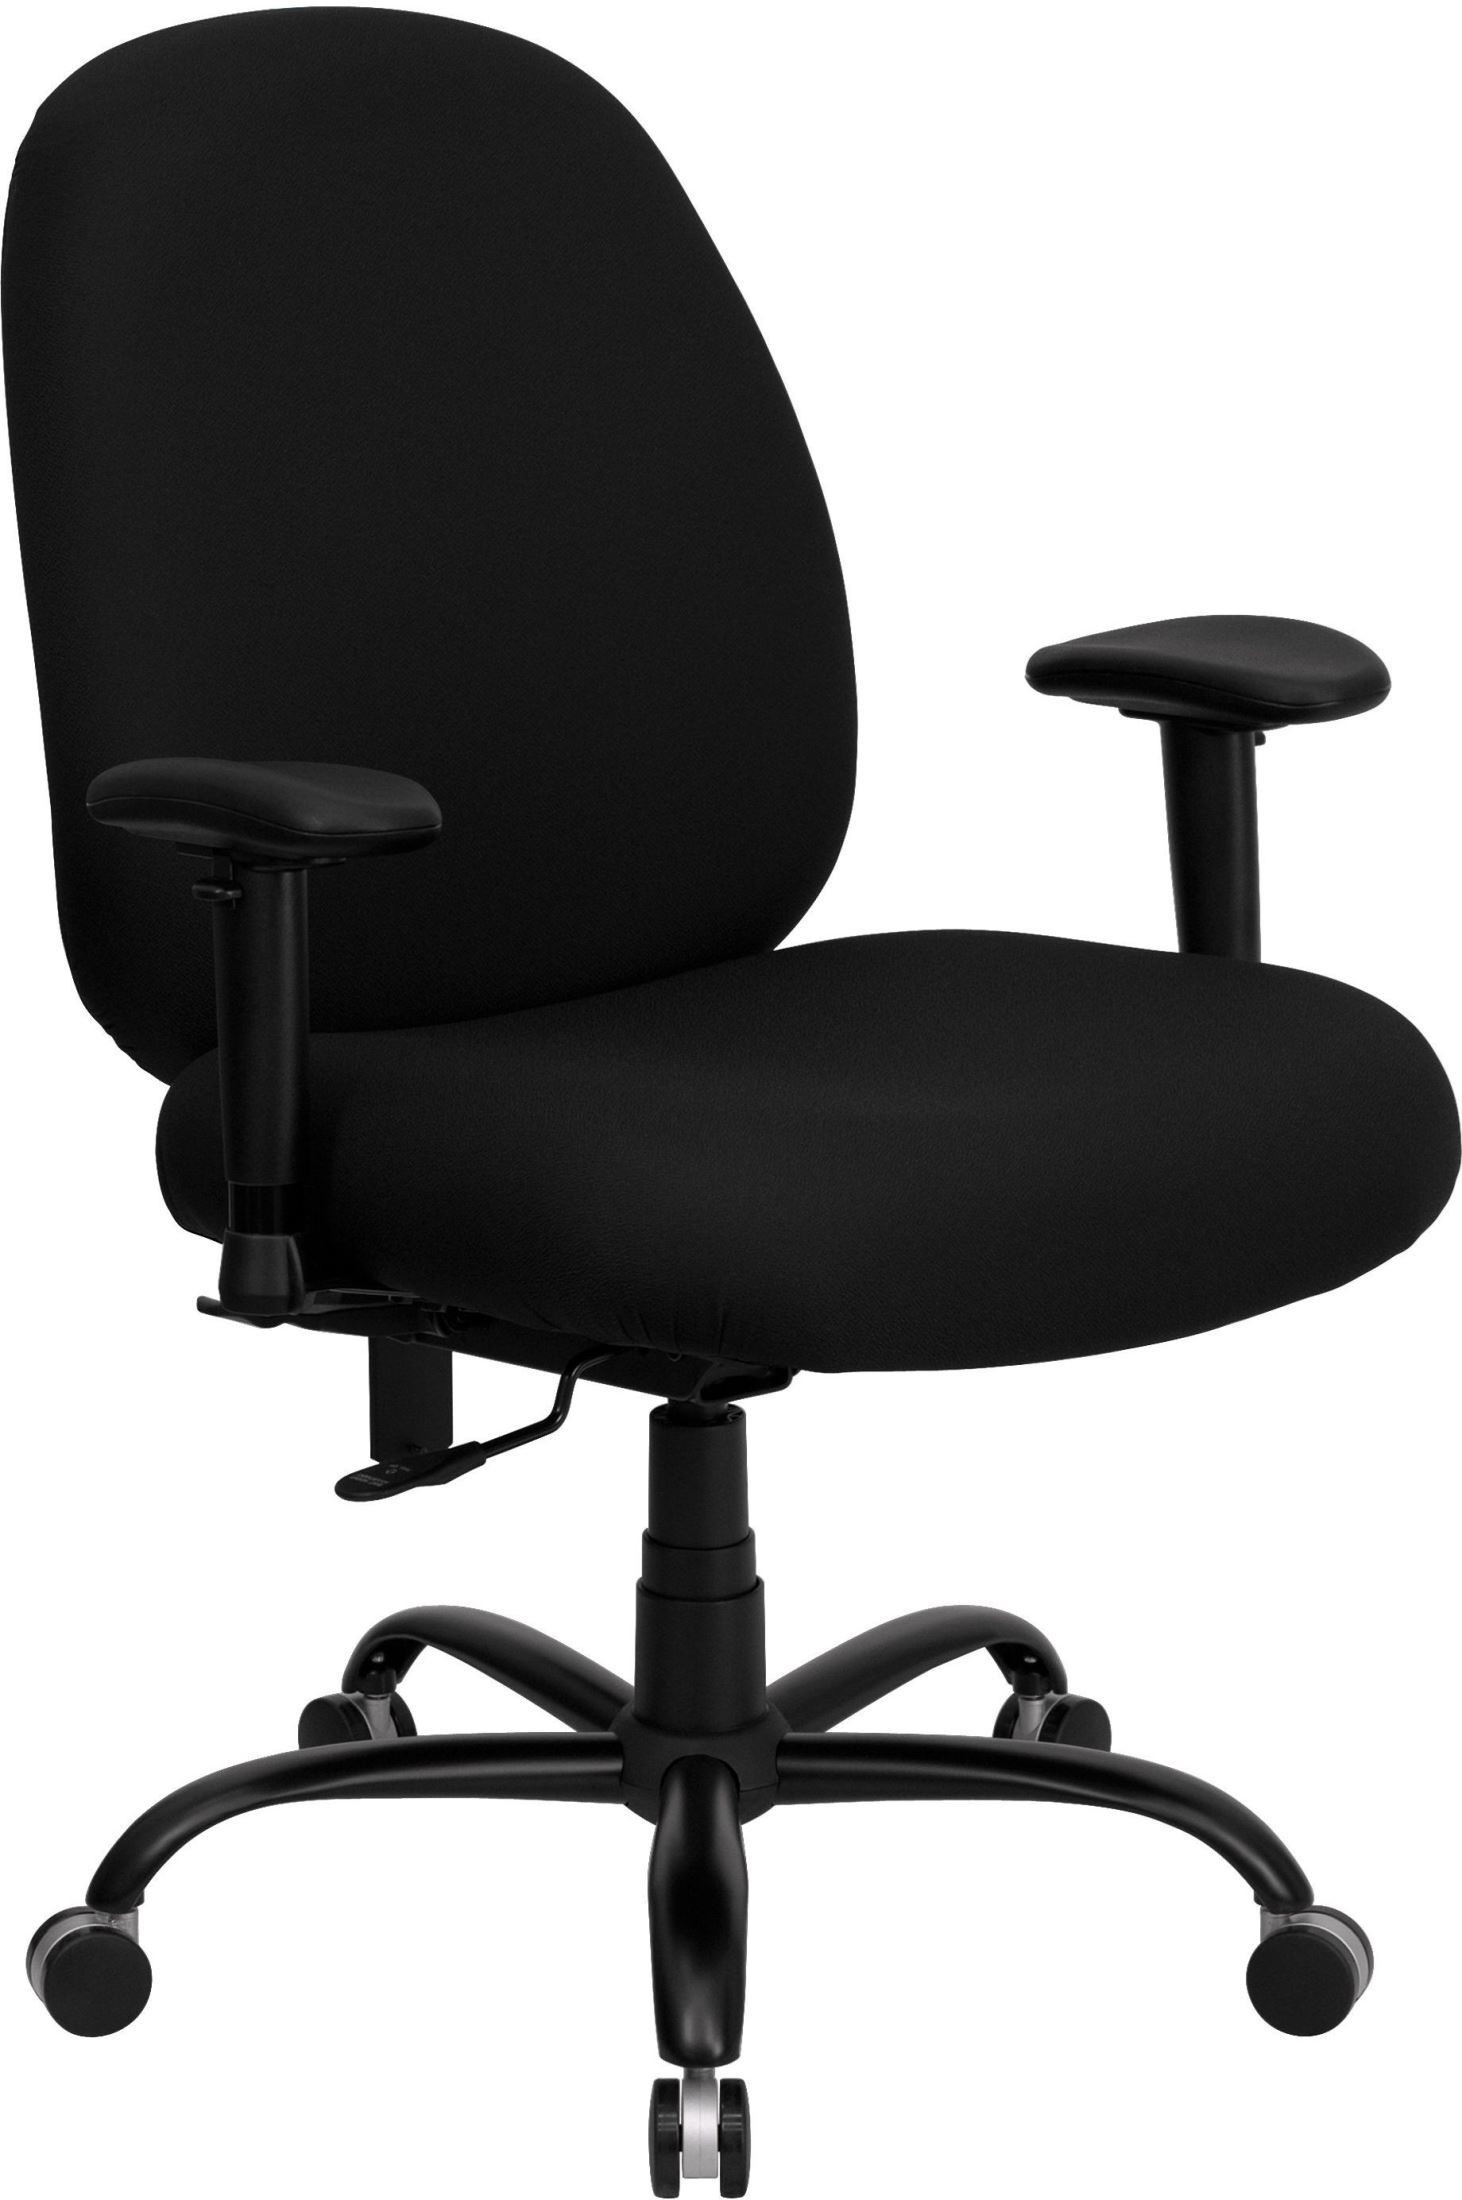 Hercules 500 Lb. Capacity Big And Tall Black Office Chair ...